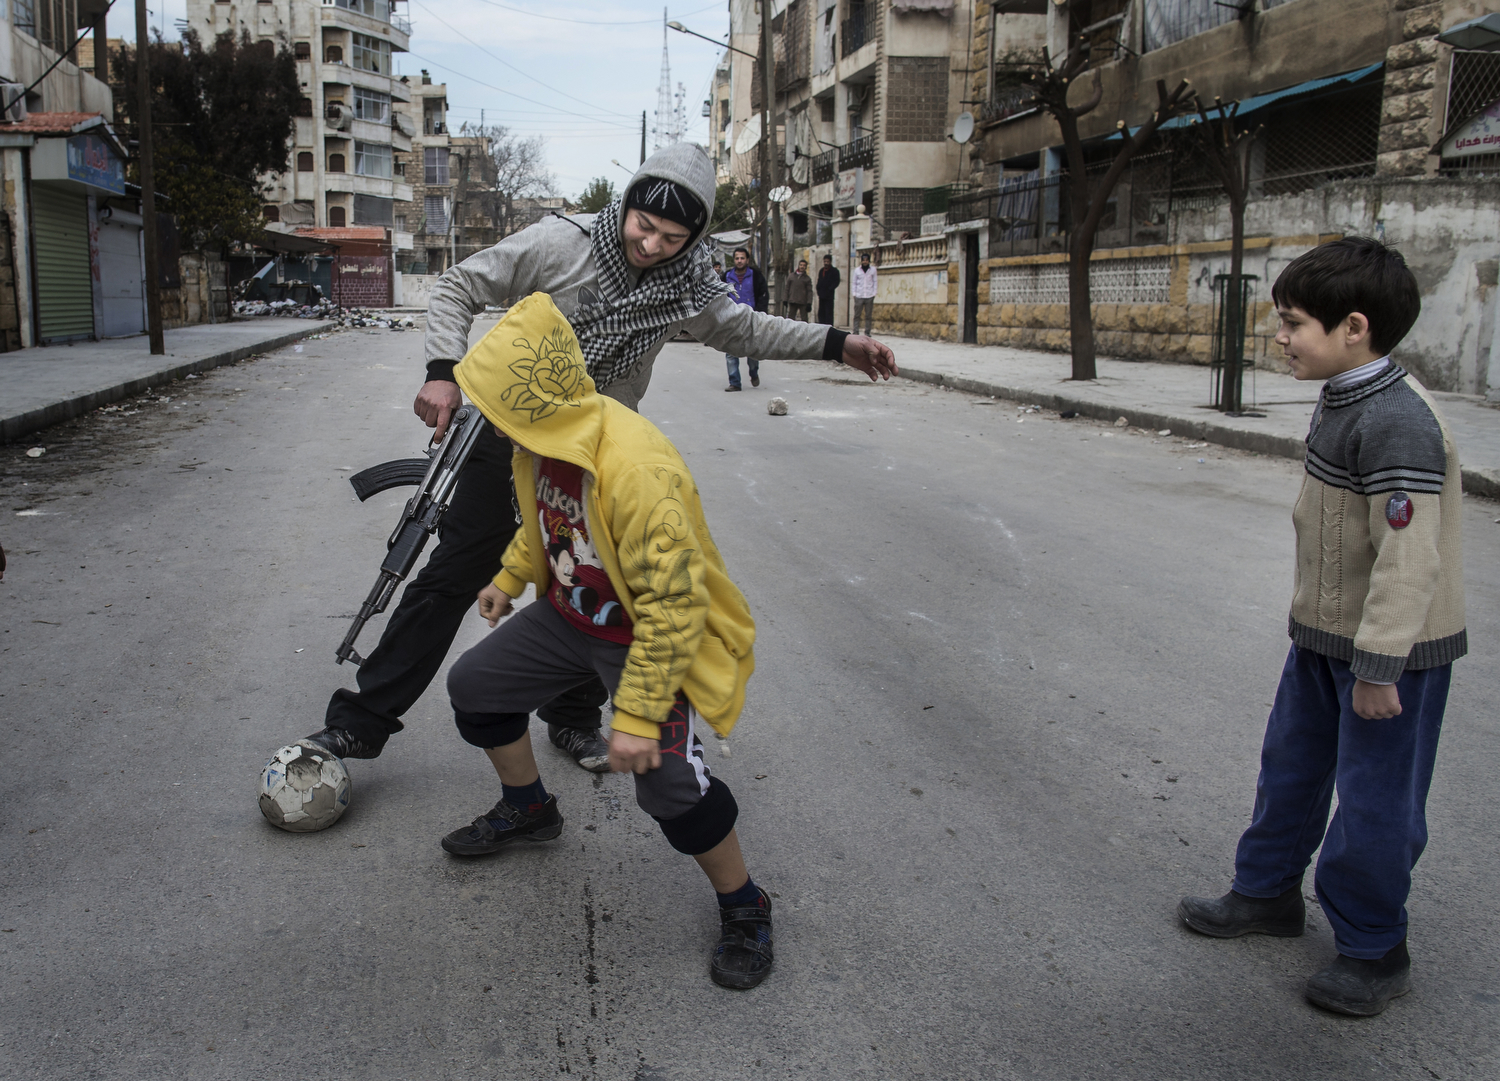 A Free Syrian Army fighter plays football with children in the Saif al-Dawlah neighborhood of Aleppo.